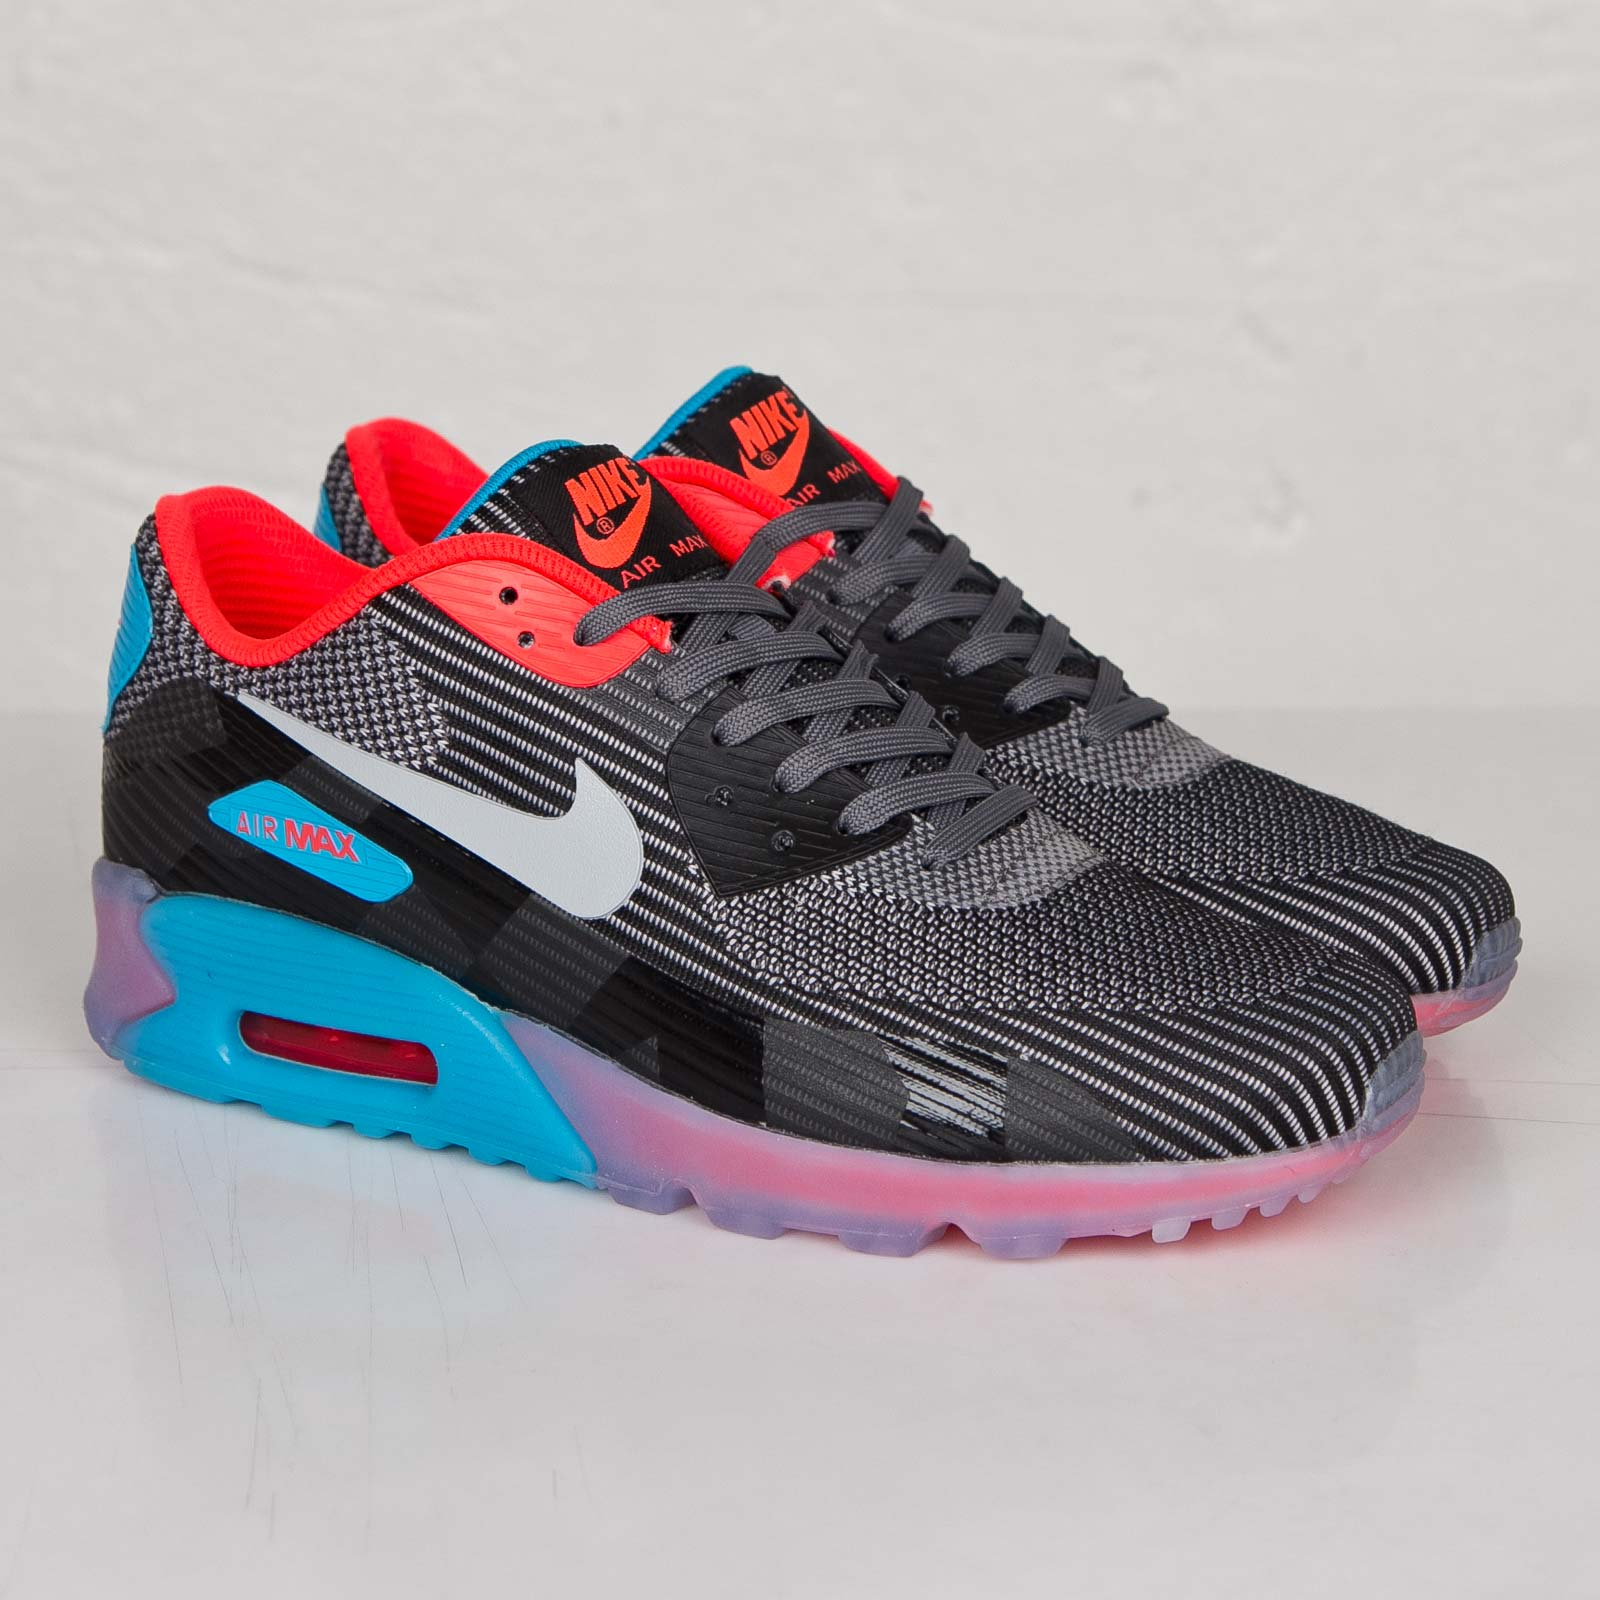 new product f656a 6f70f ... Shoes Wolf Grey Pure Platinum Nike Air Max 90 Knit Jacquard Ice QS ...